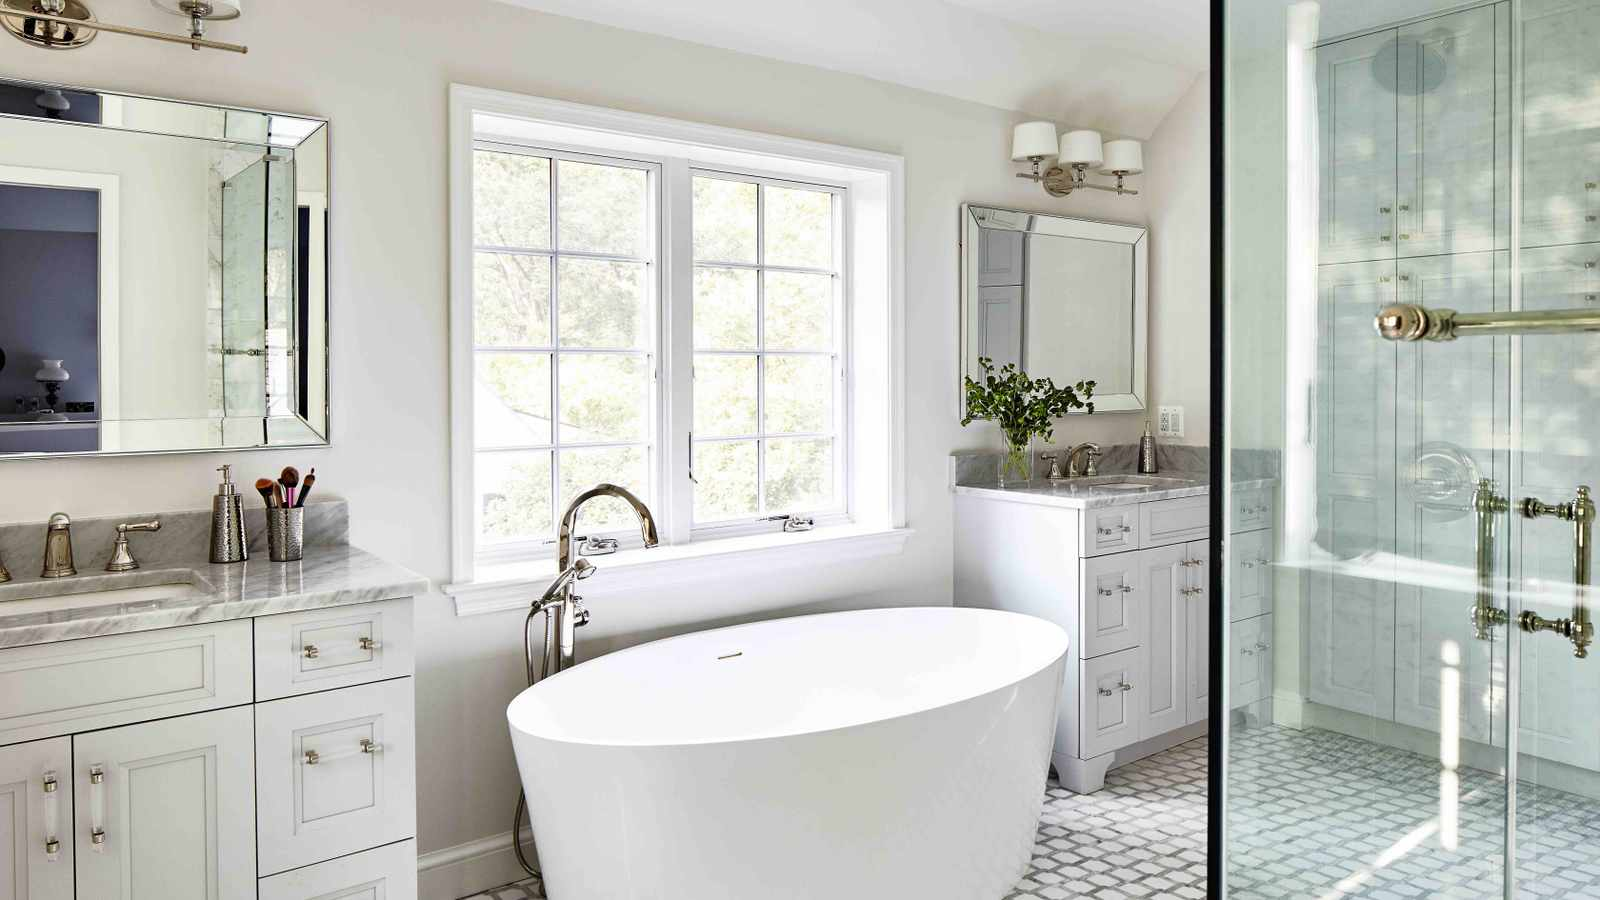 Five bathroom updates that will help your space stand the test of time